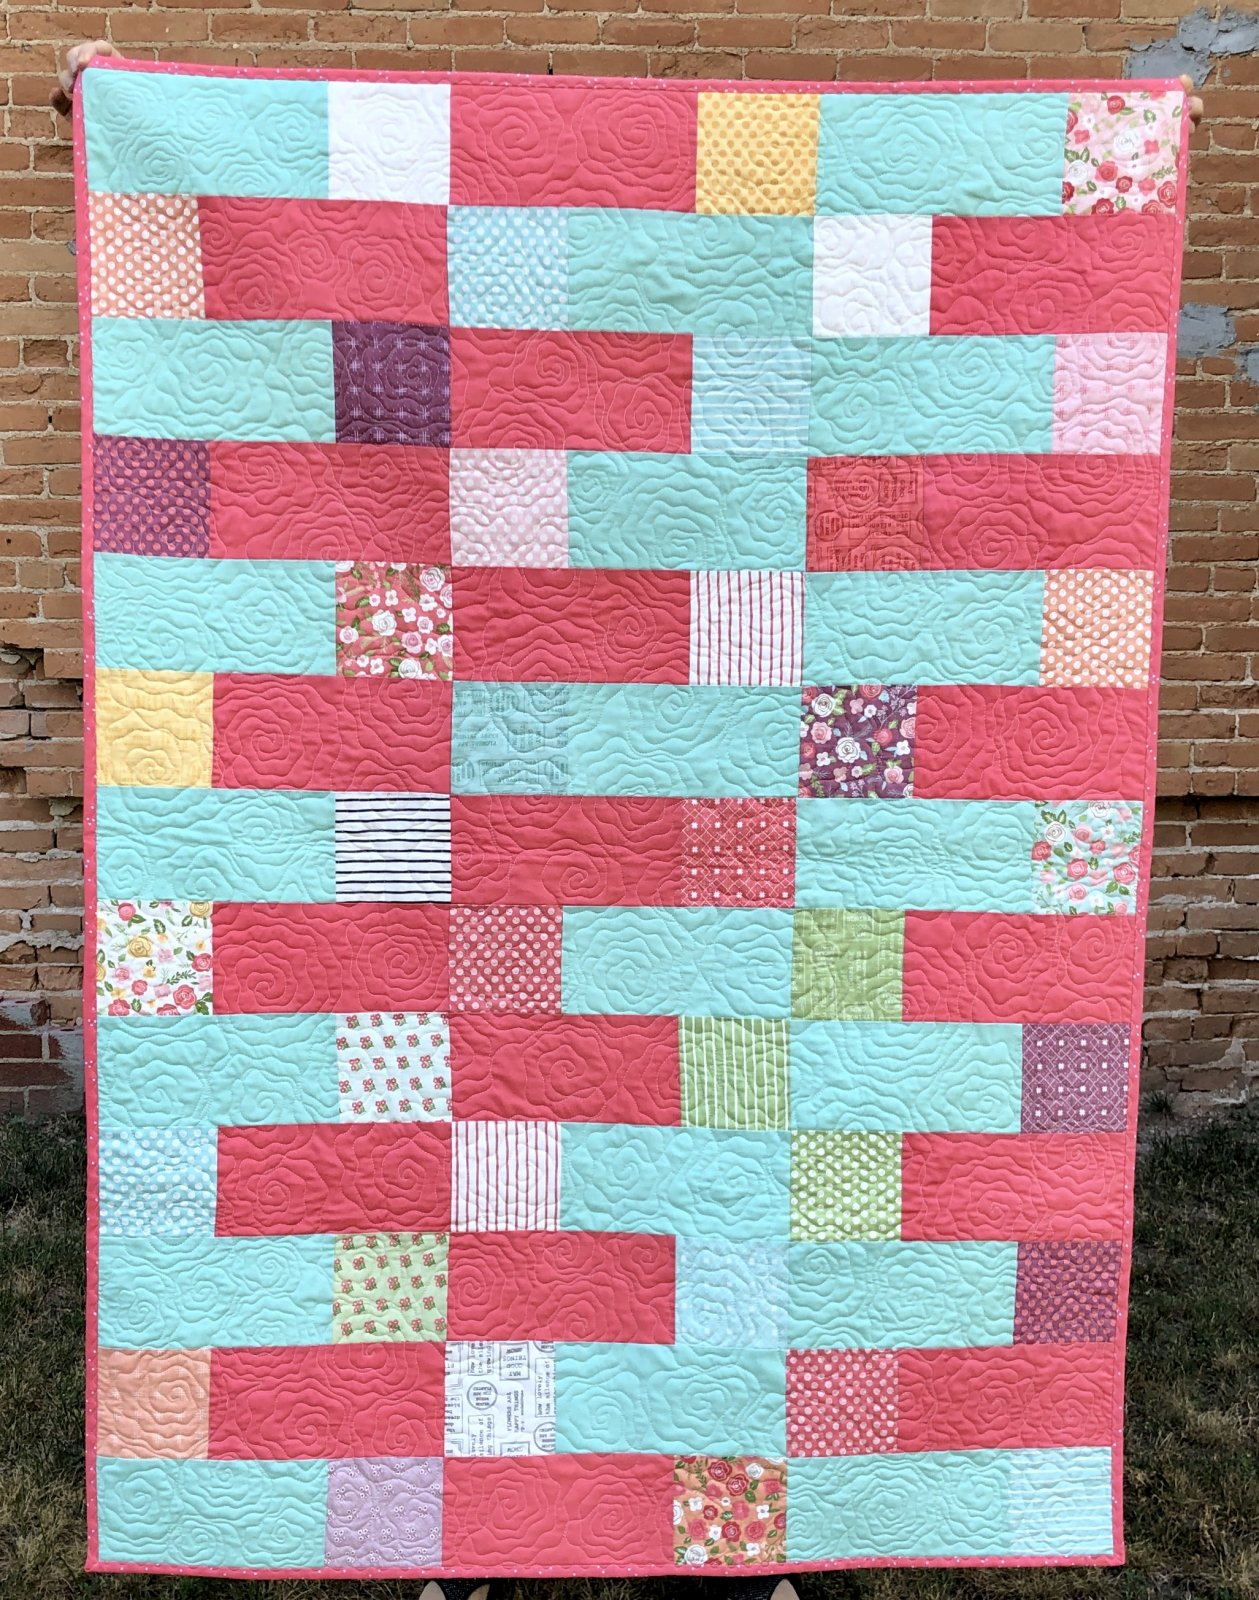 Lollipop Garden Quilt Kit